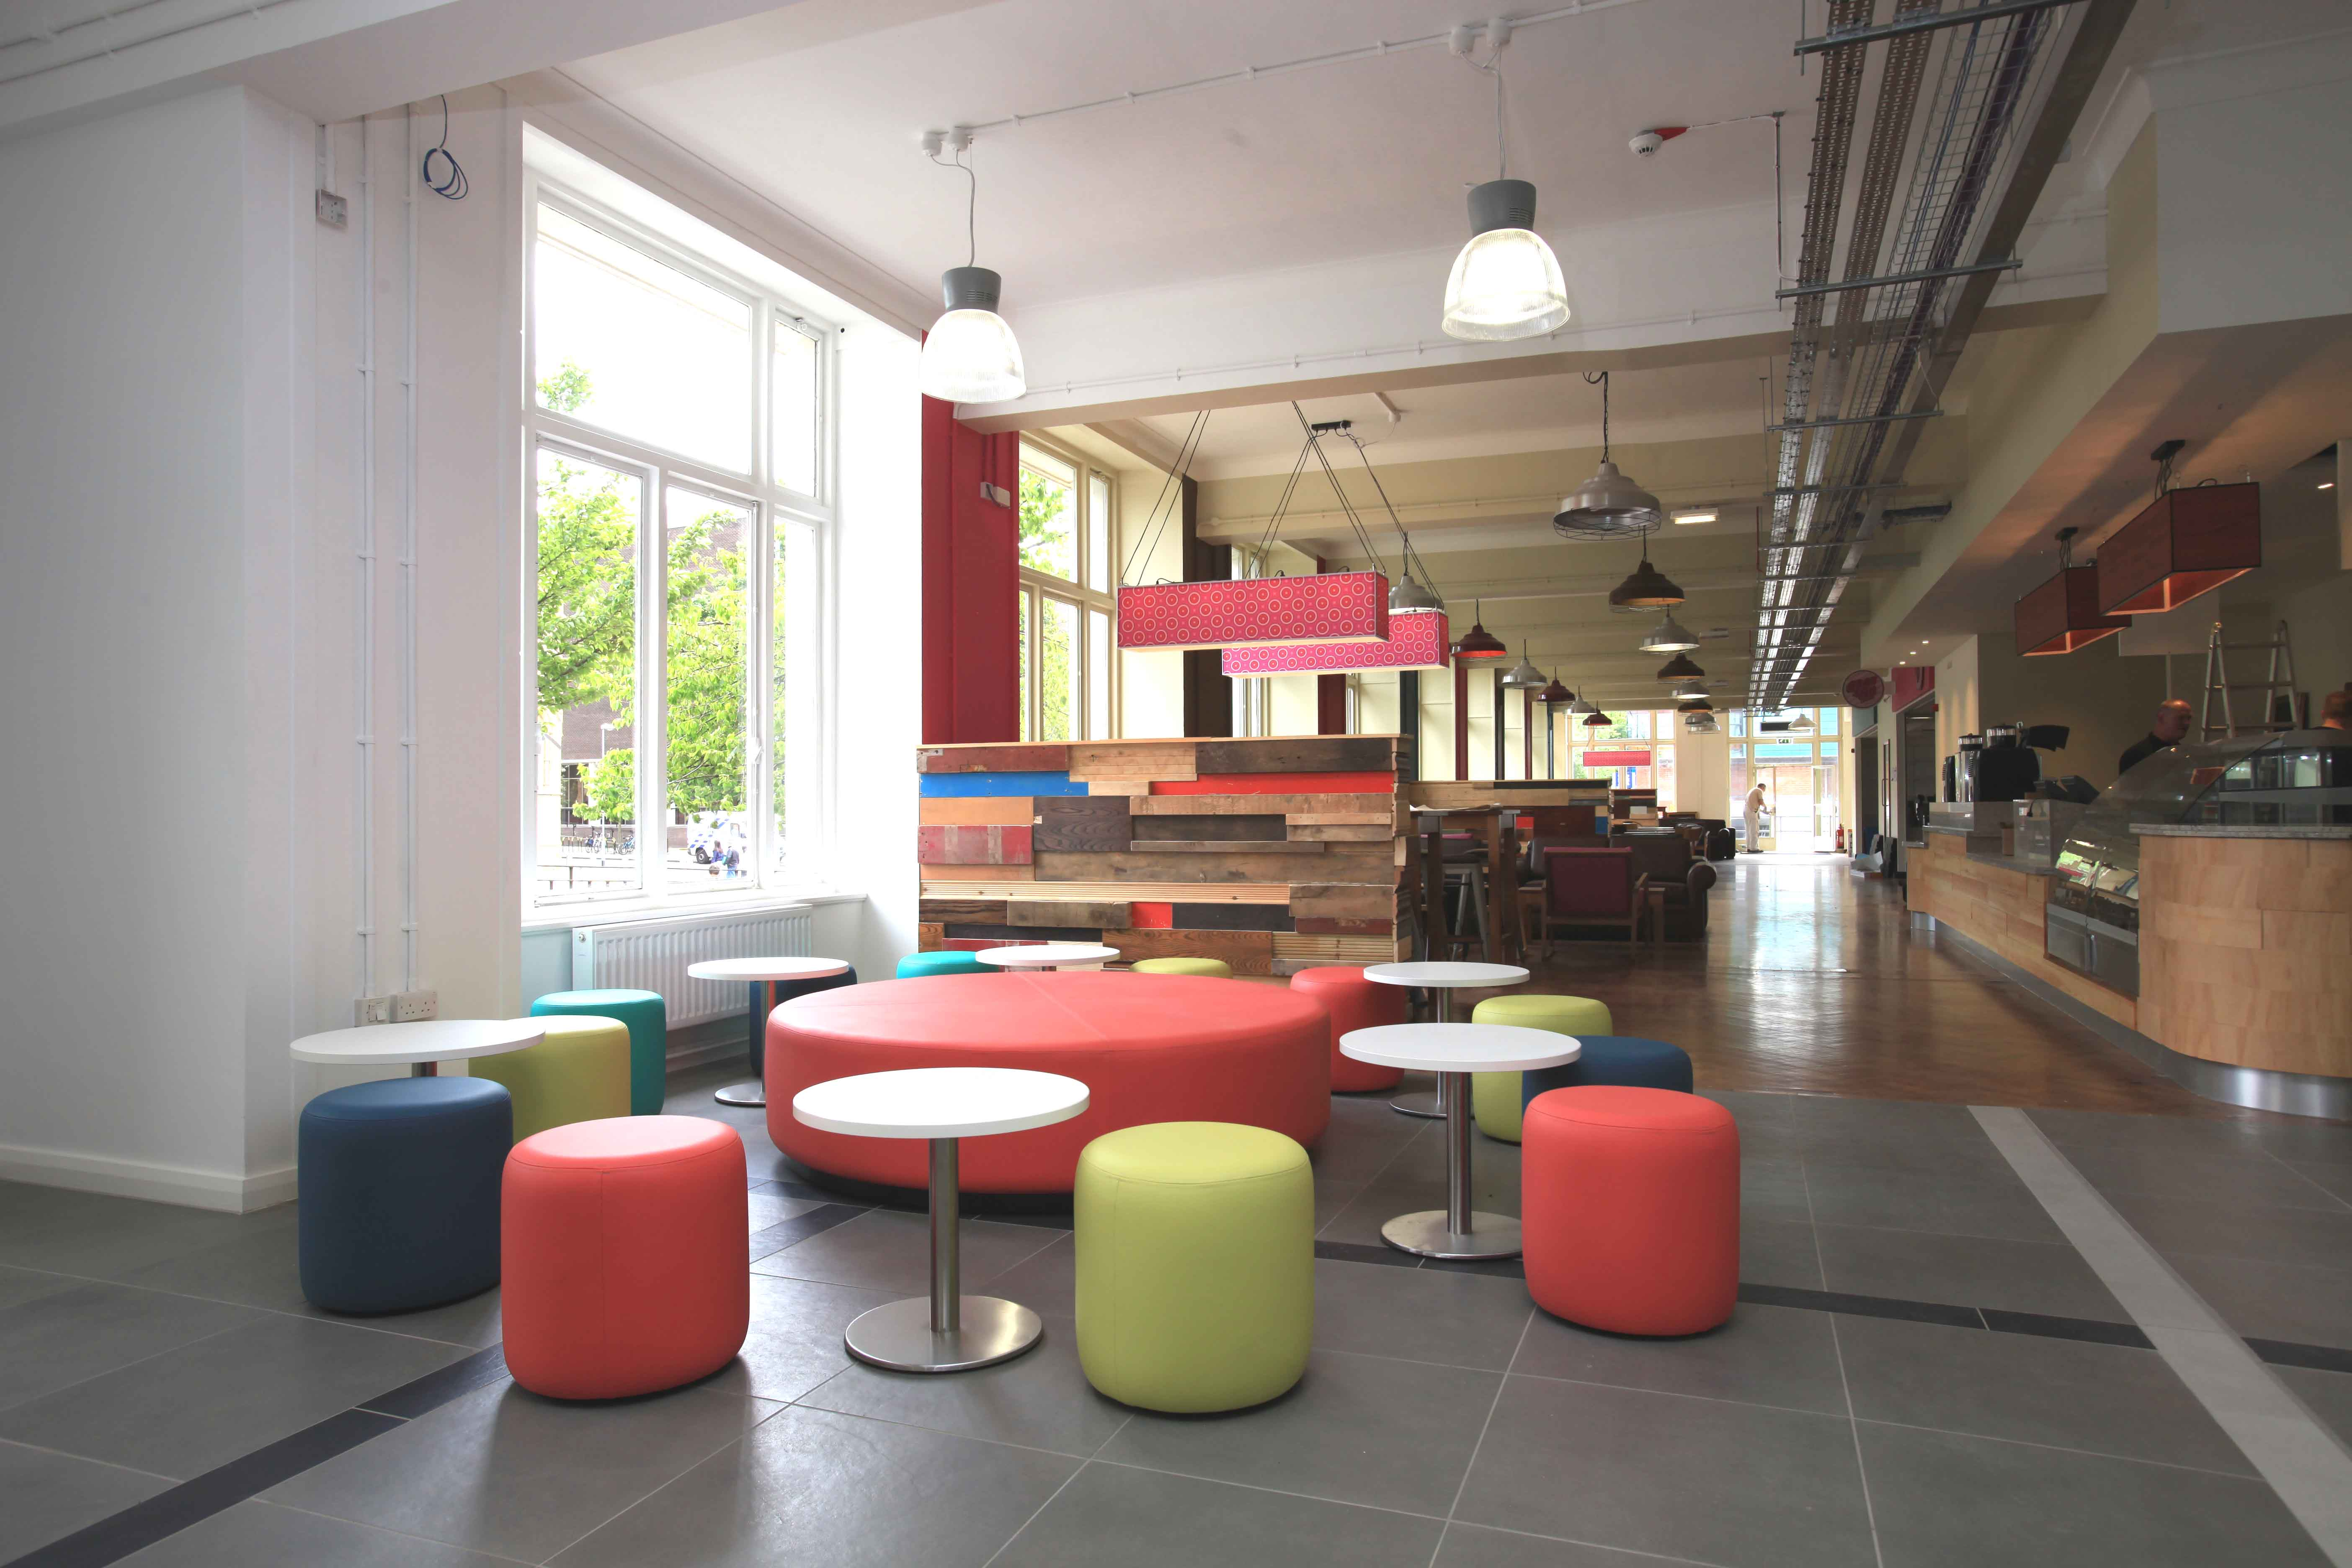 rossparry.co.uk/David Parry Picture shows the newly refurbished student union building at Machester University